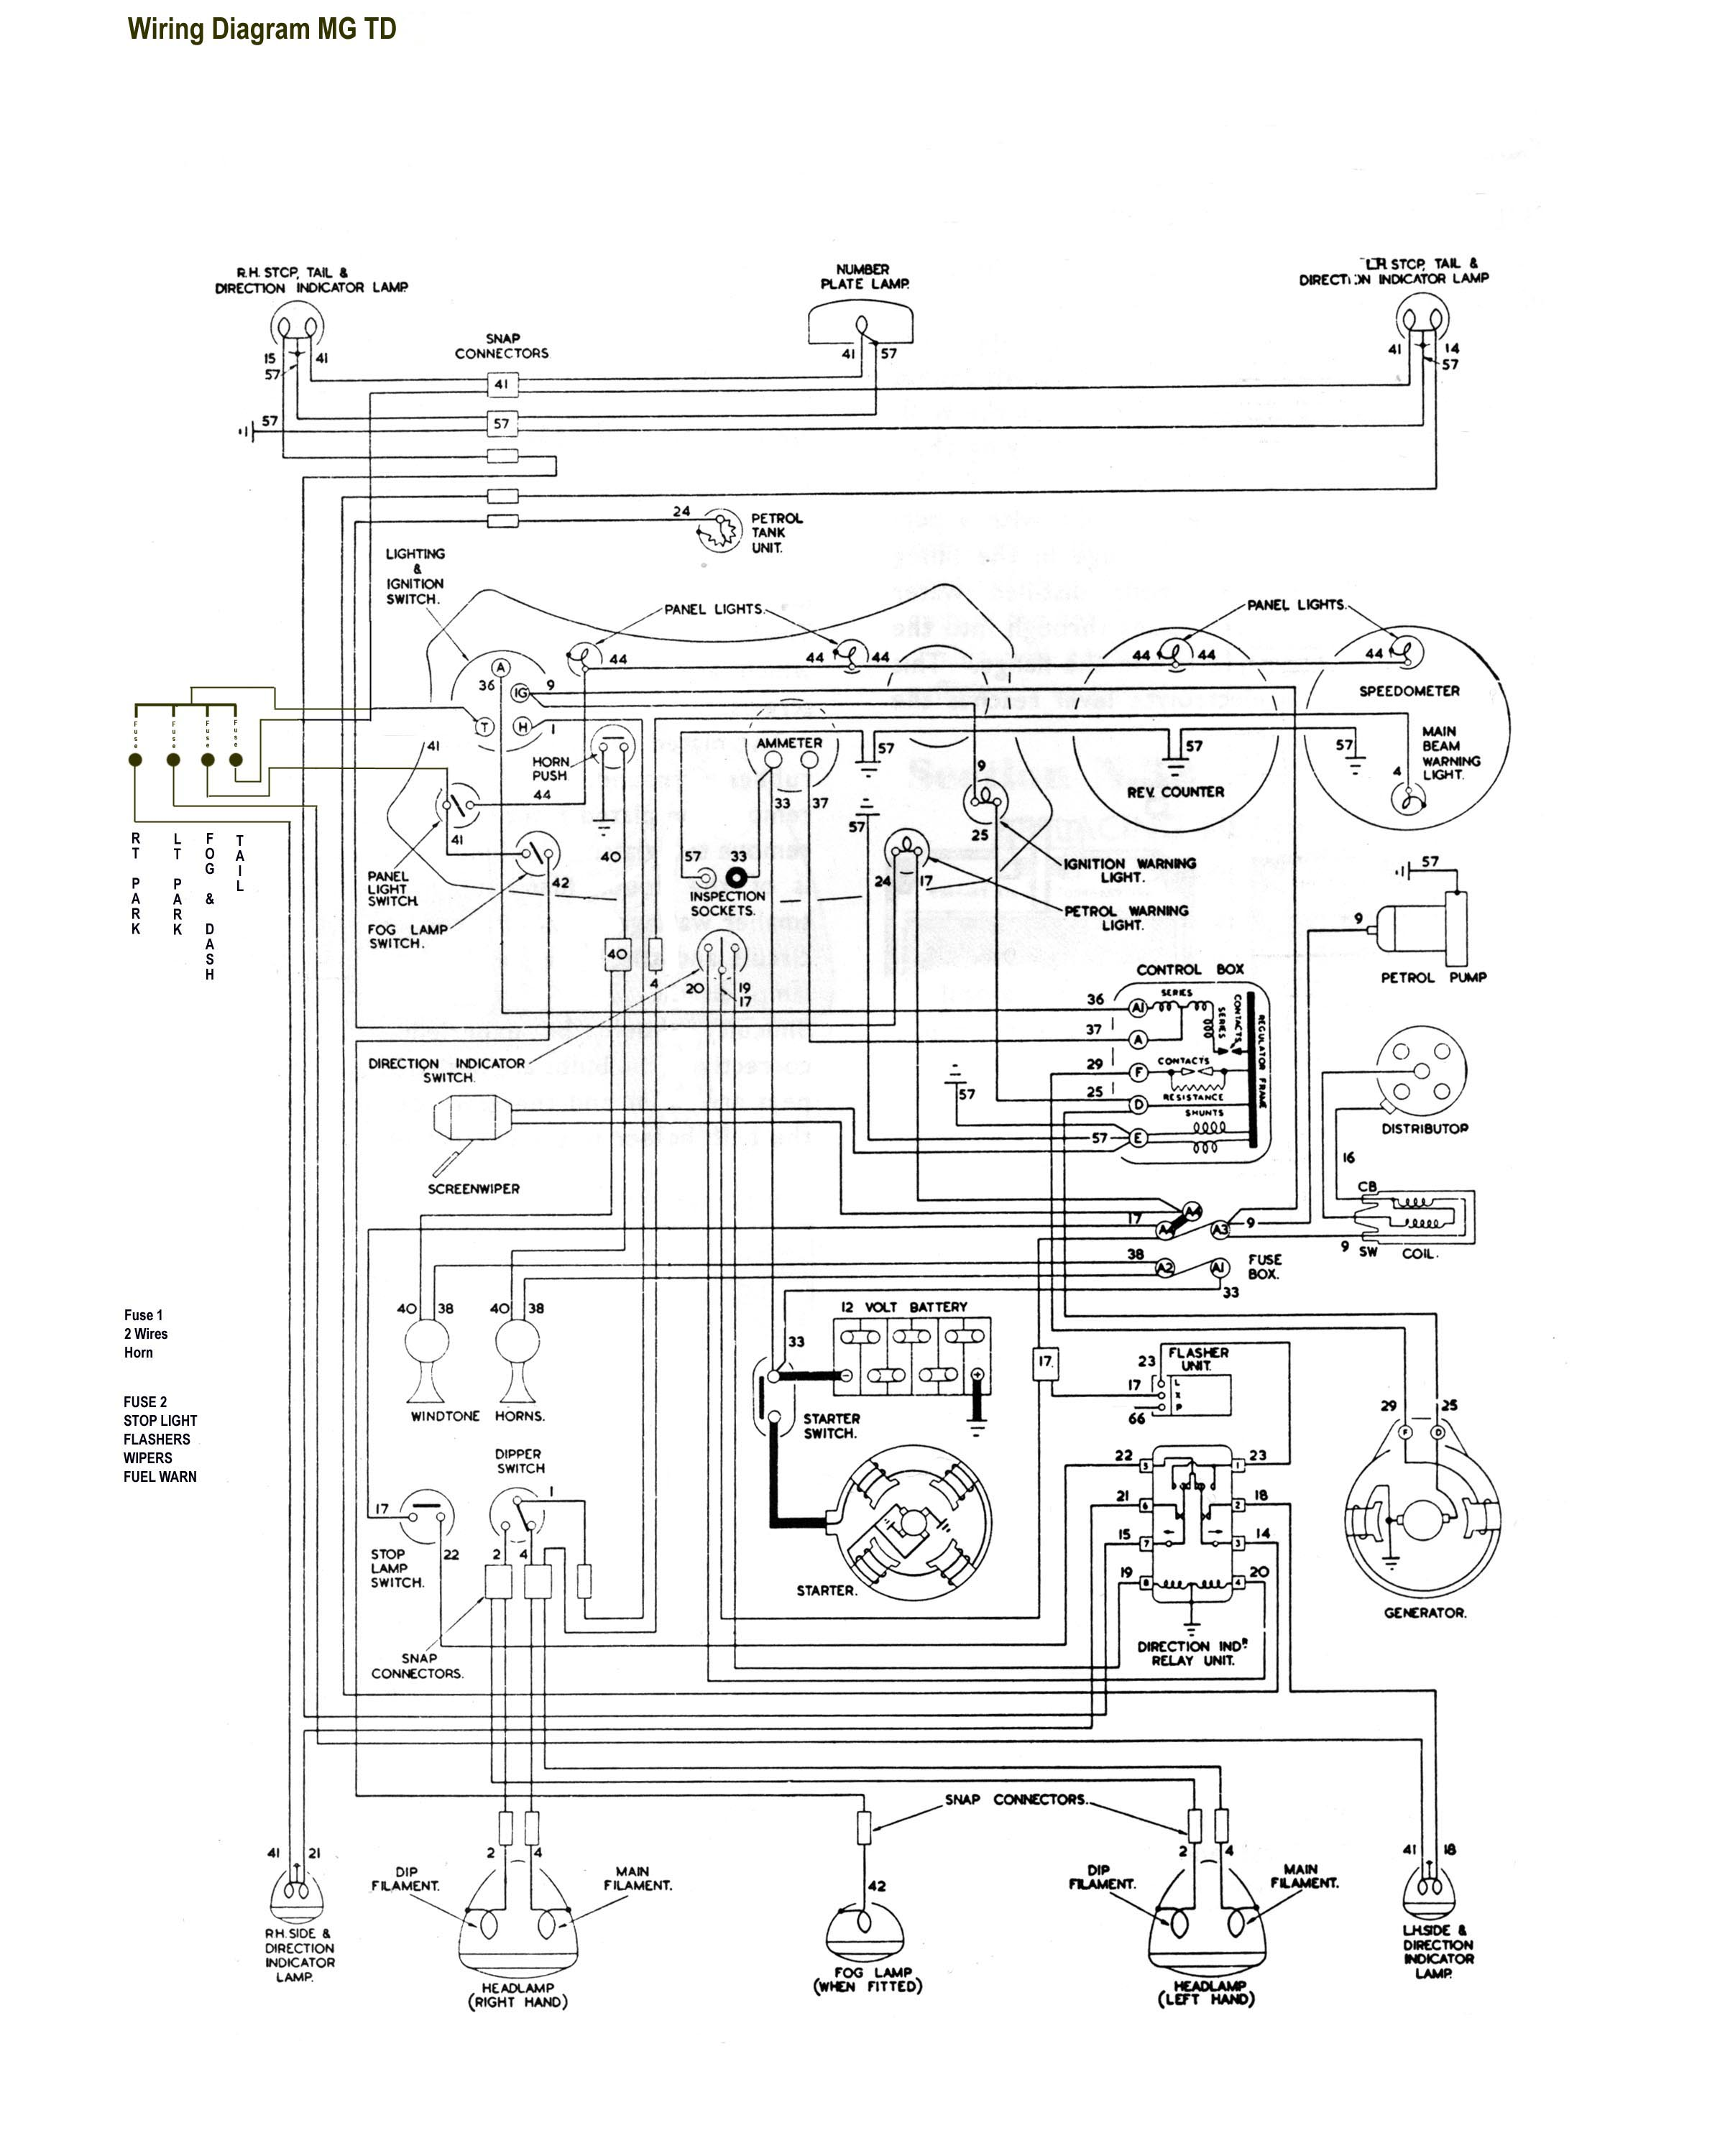 mg tf electrical wiring diagram 2001 dodge dakota 4 7 bentley diagrams td get free image about